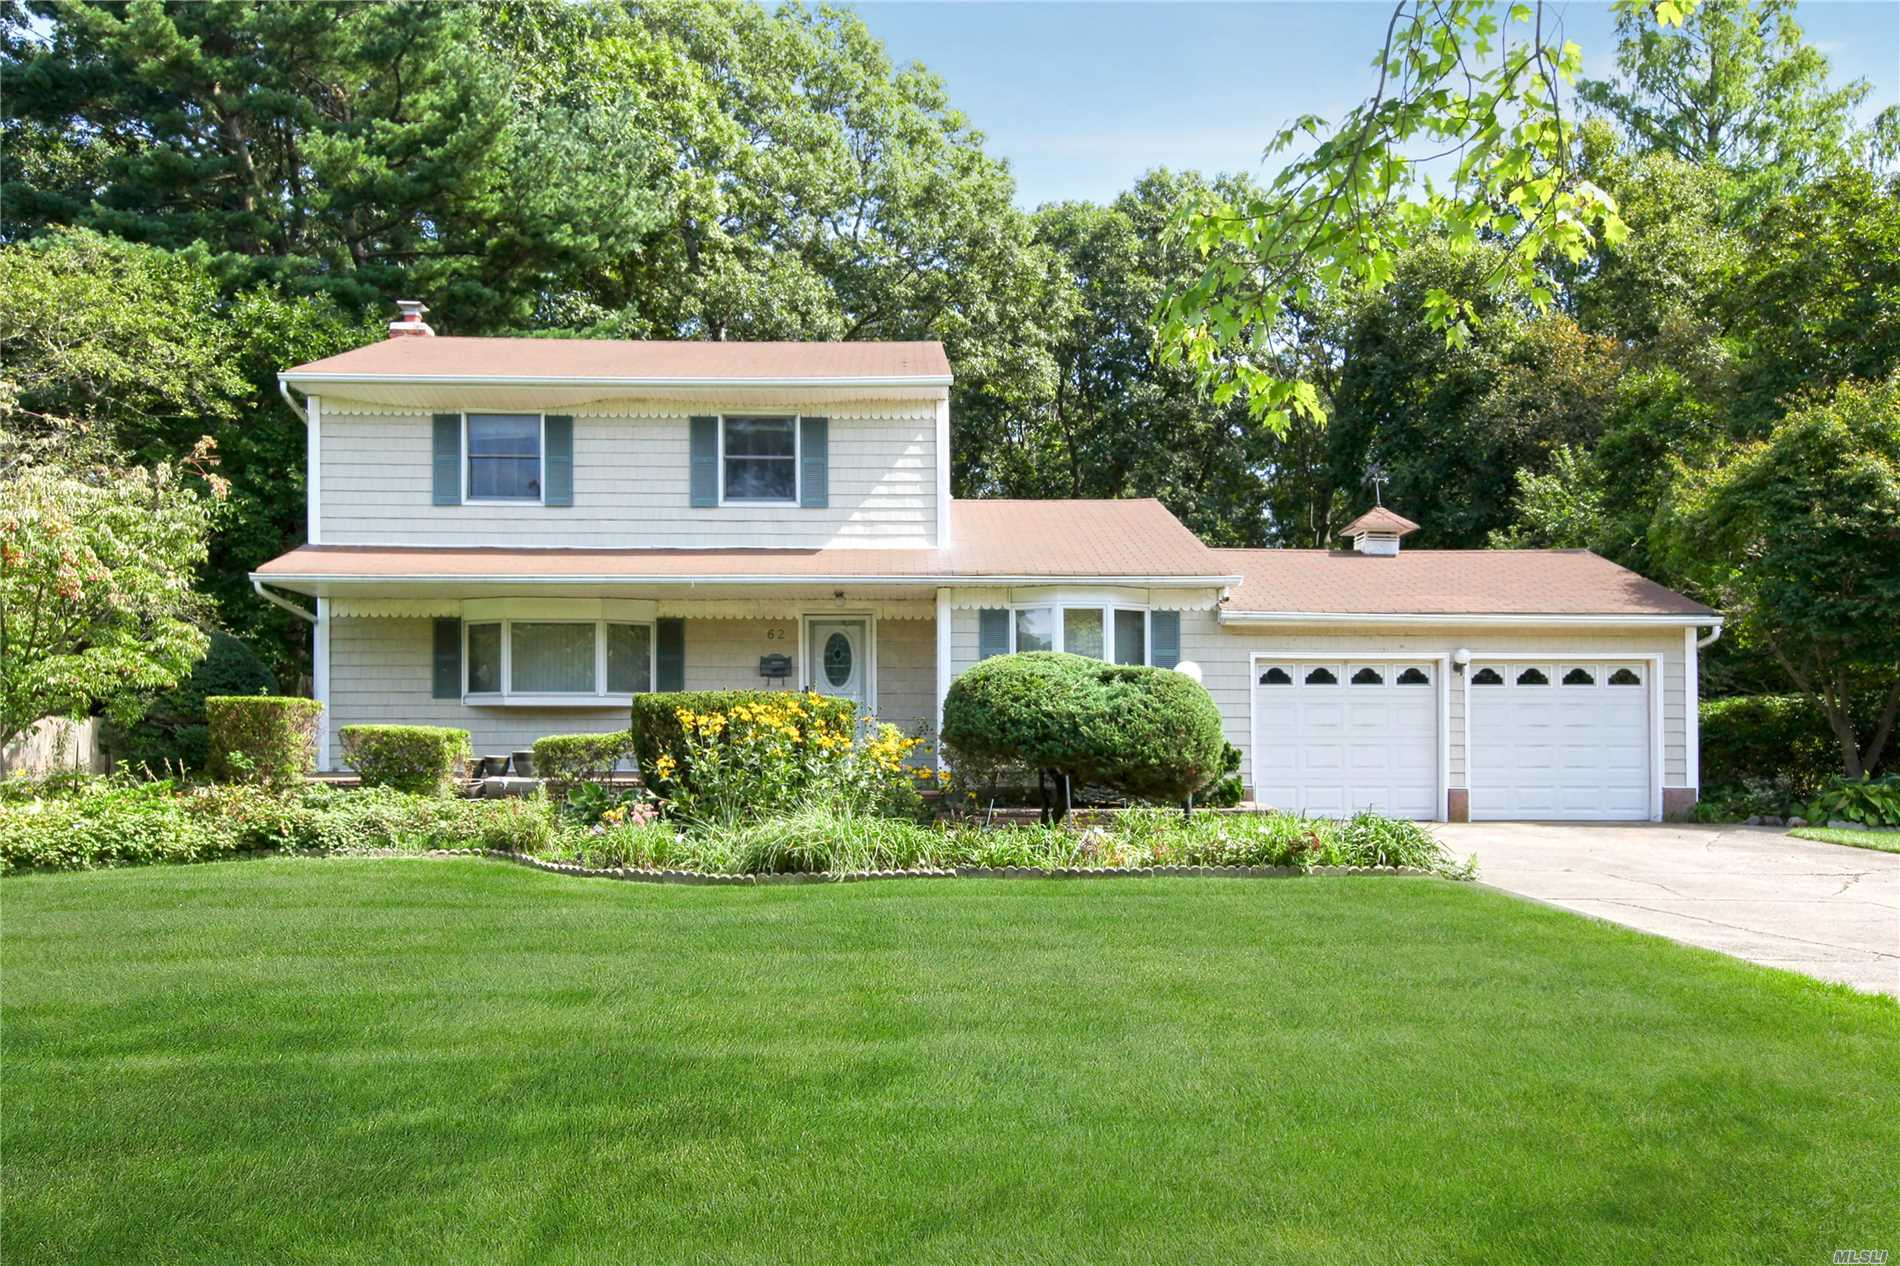 Incredible Opportunity To Own In The Heart Of Commack, Commack Schools, 4 Bedroom 2 Bathroom Colonial With Full Basement 2 Car Garage, Spacious Bedrooms, Living Room, Dining Room, Den, Central Air Condition/Heating System(2013), Newer Liner In Pool Approx (2015)